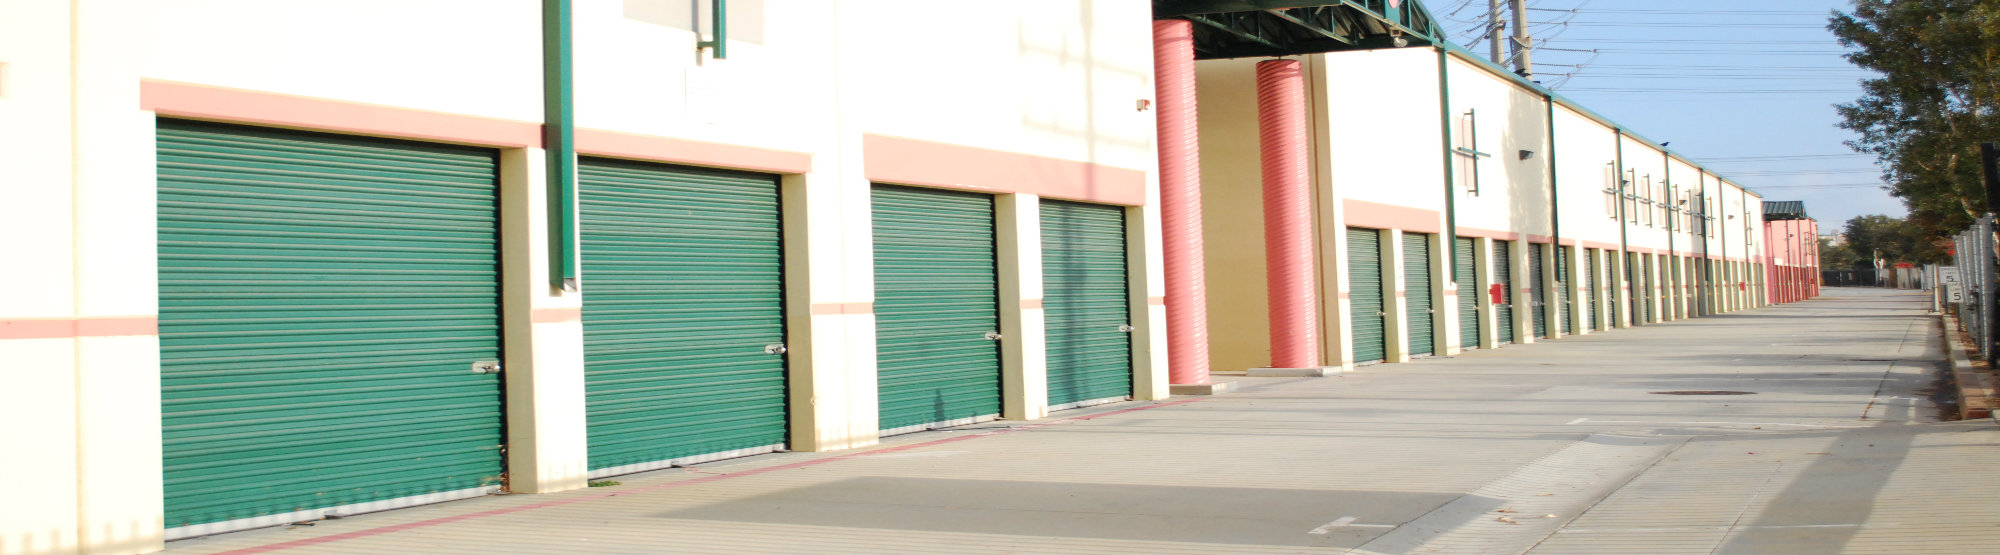 self storage units in Redondo Hermos, Cerritos, and South Gate CA